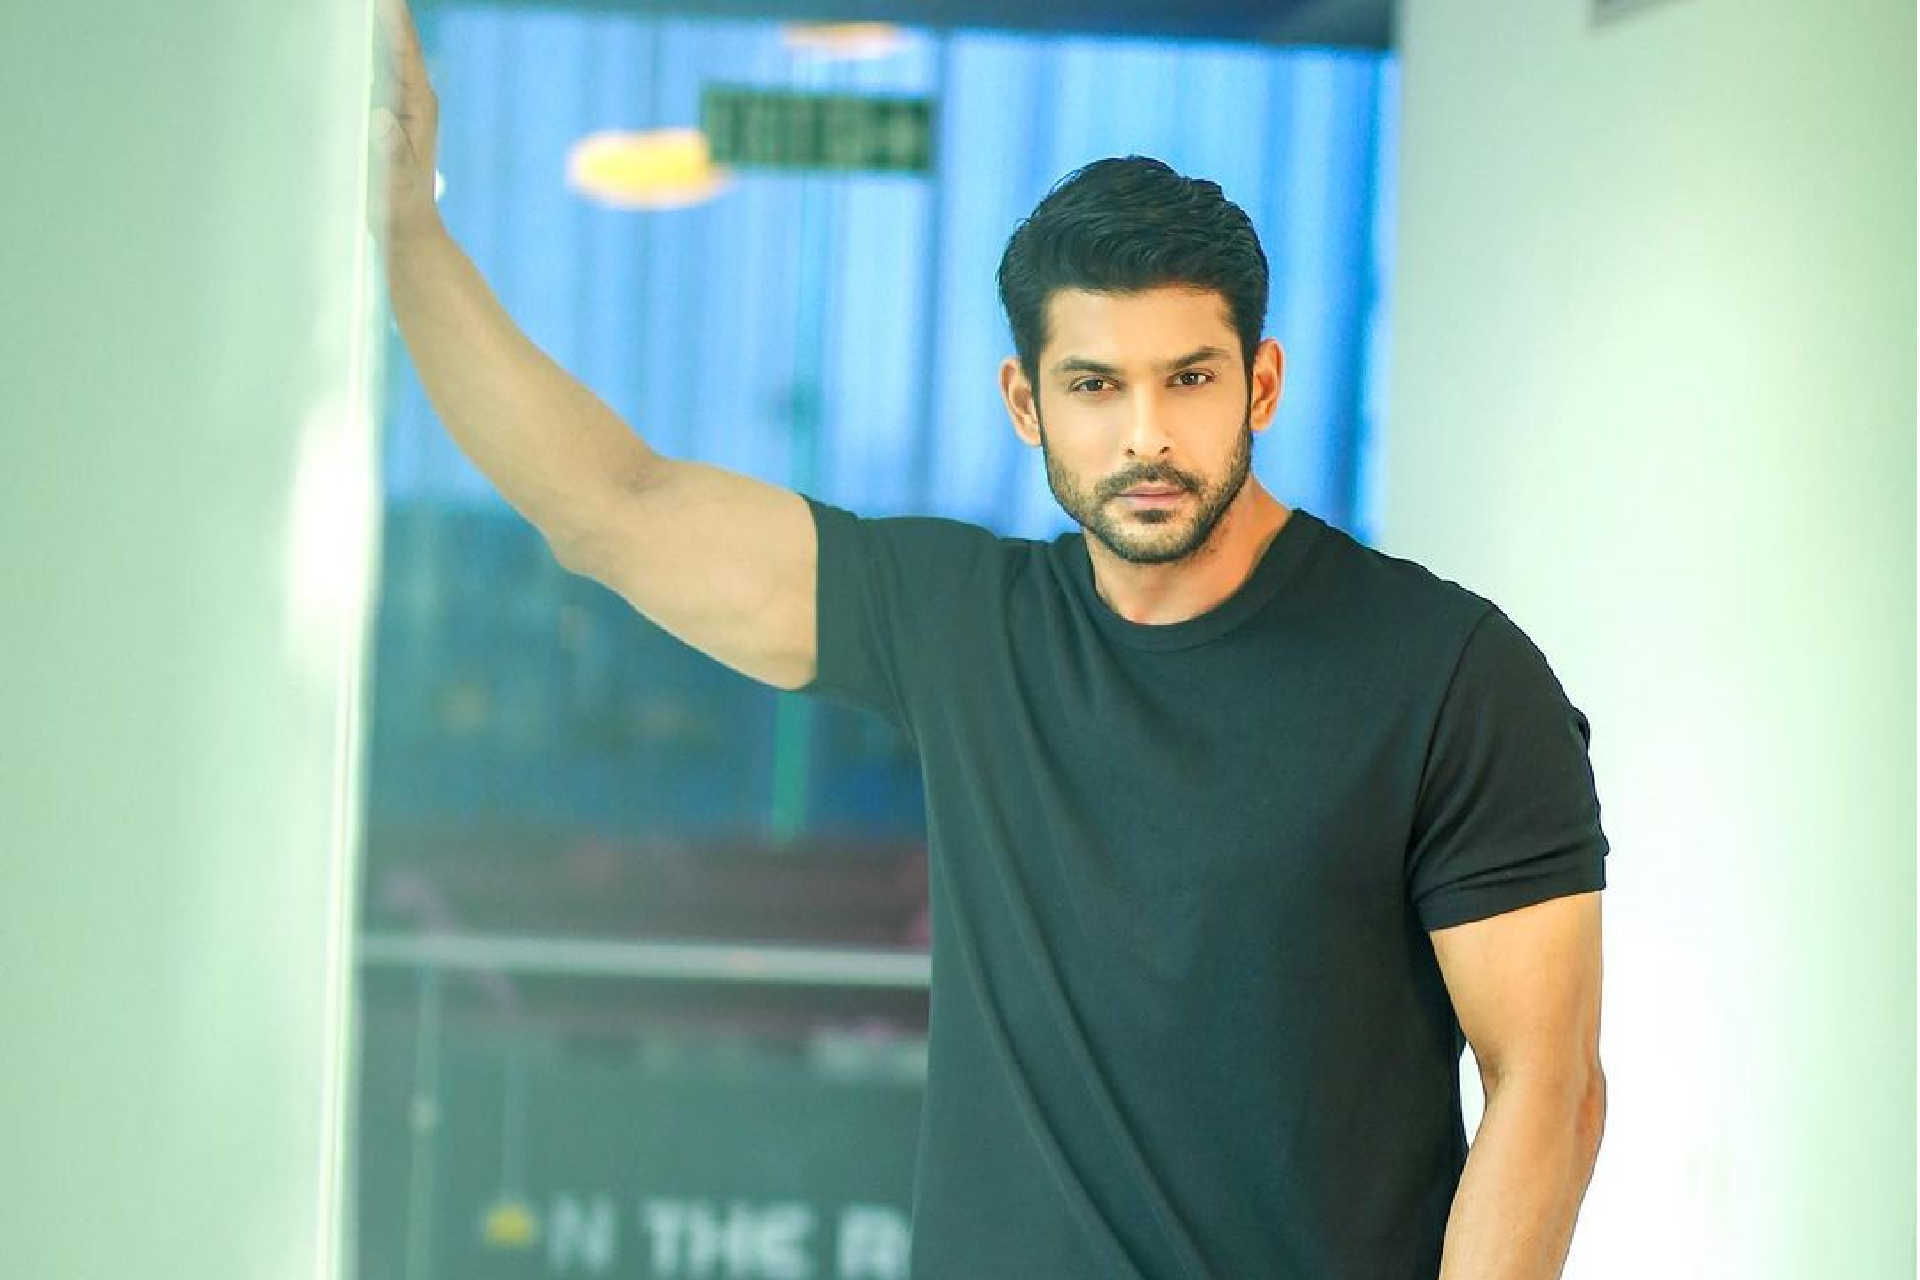 Puzzlement and shock about Sidharth Shukla's unexpected death, age 40